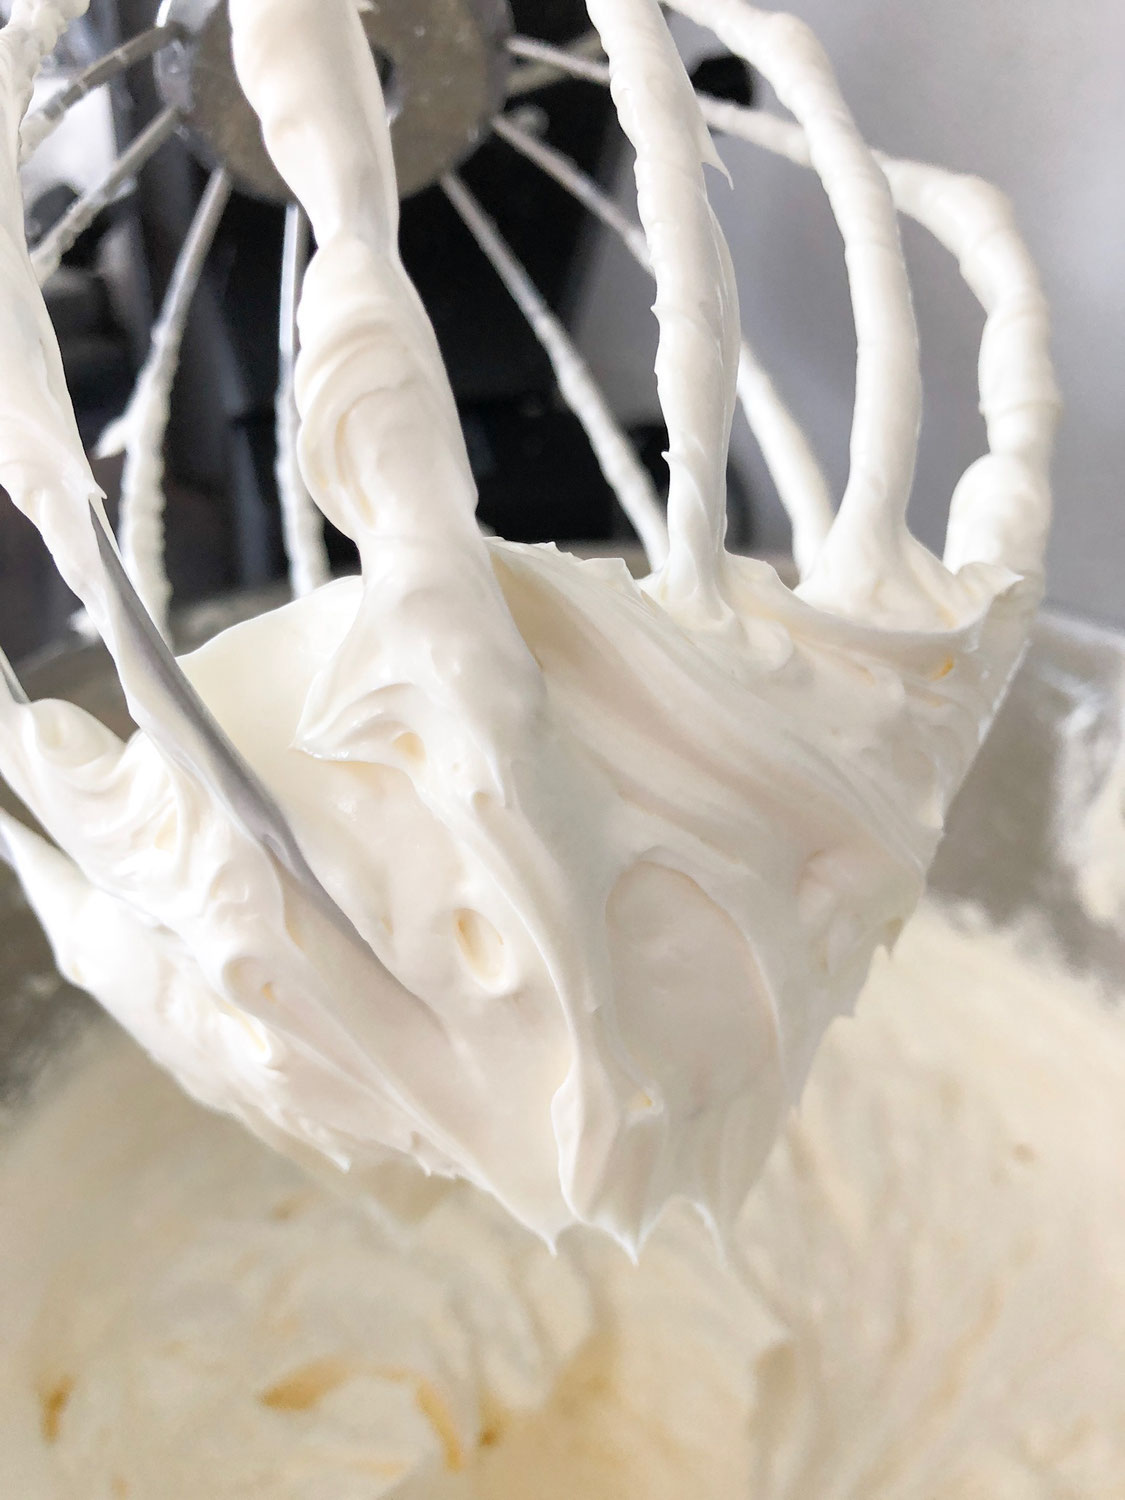 Swiss Meringue Buttercreme